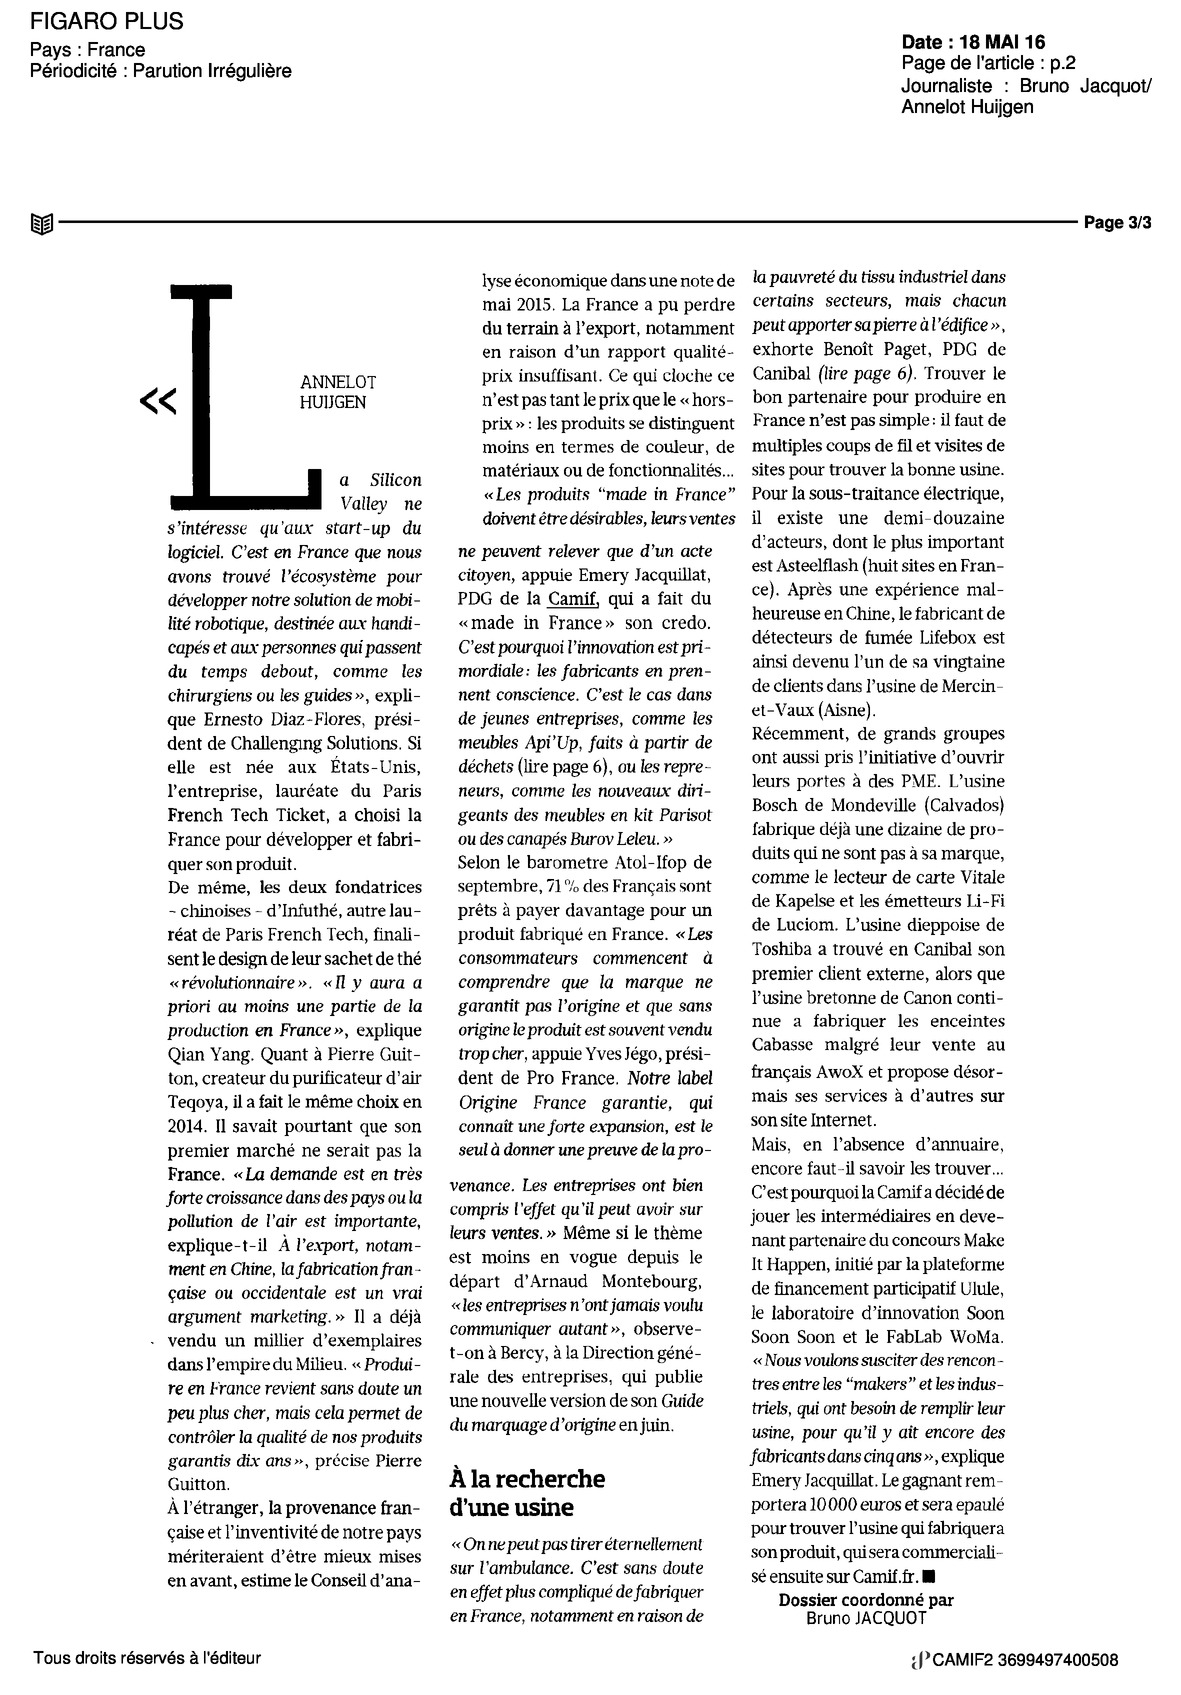 2016-05-181963figaro_plus3-page2